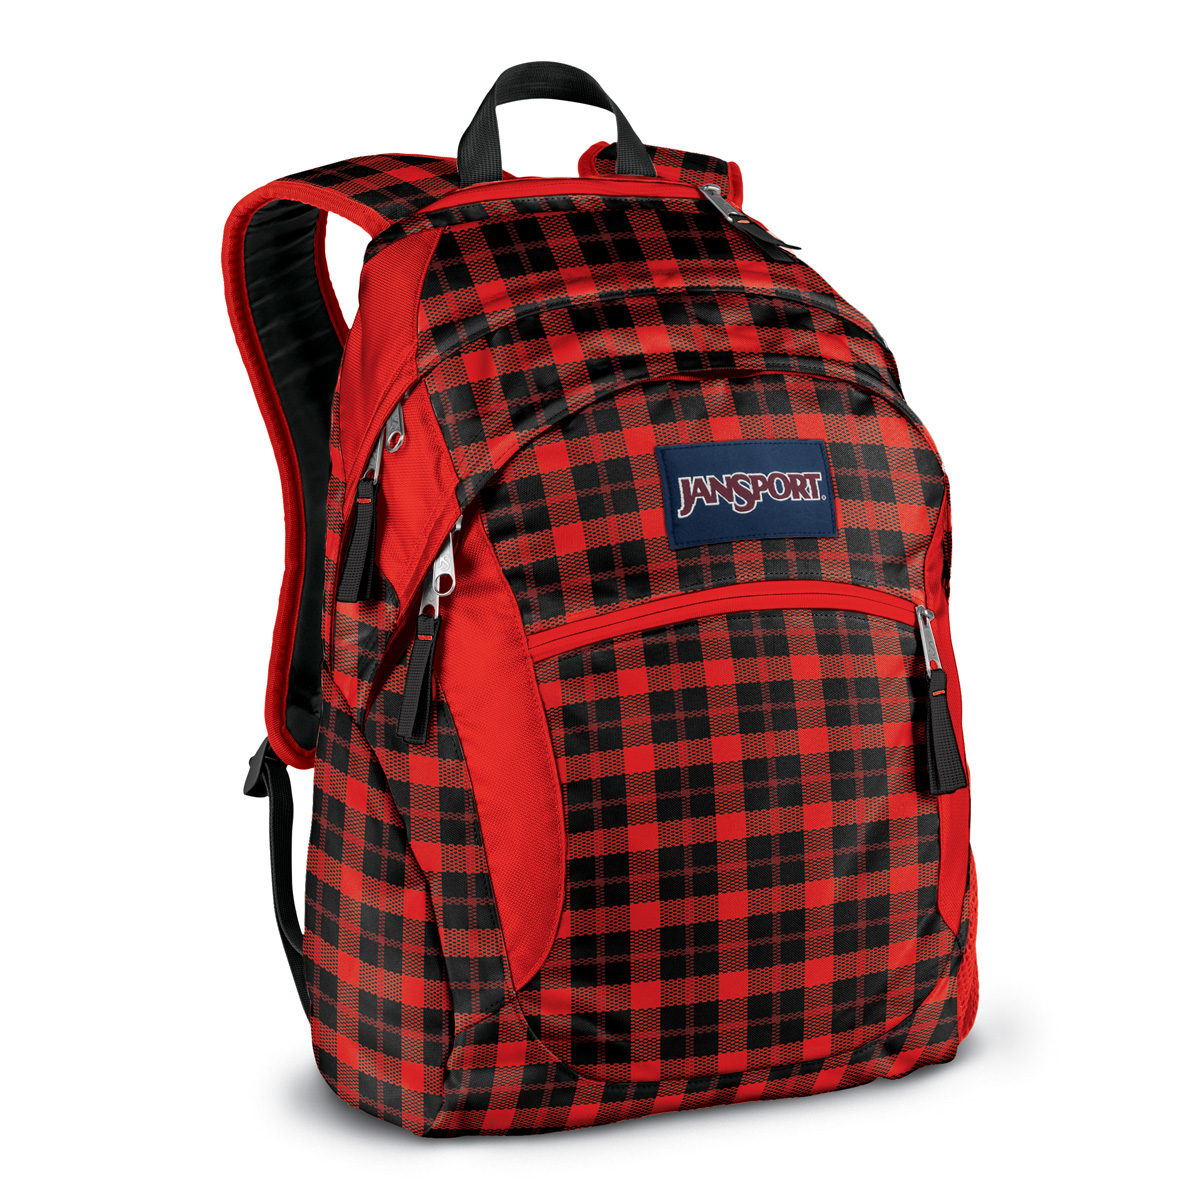 Where Do They Sell Jansport Backpacks For Cheap F5JCU2Za